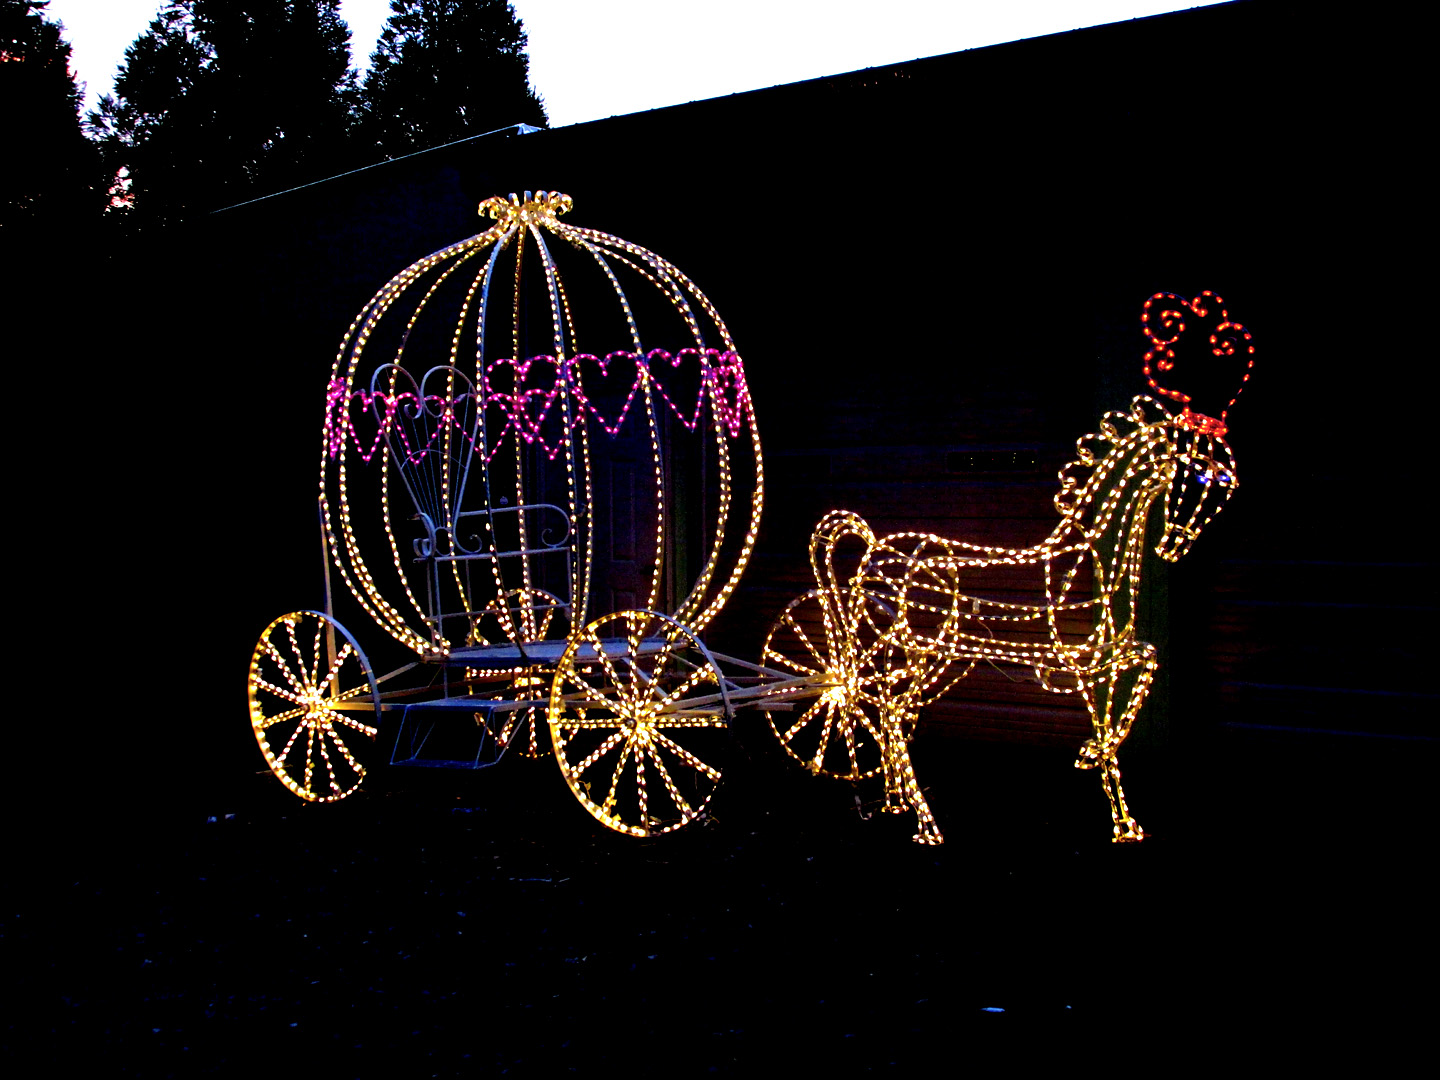 Exclusivelly Designed By The Holiday Light Store! Has A Seat Inside The  Carriage For Photo Sessions. Comes With (1) 3D Horse. Horse And Carriage  Can Be ...